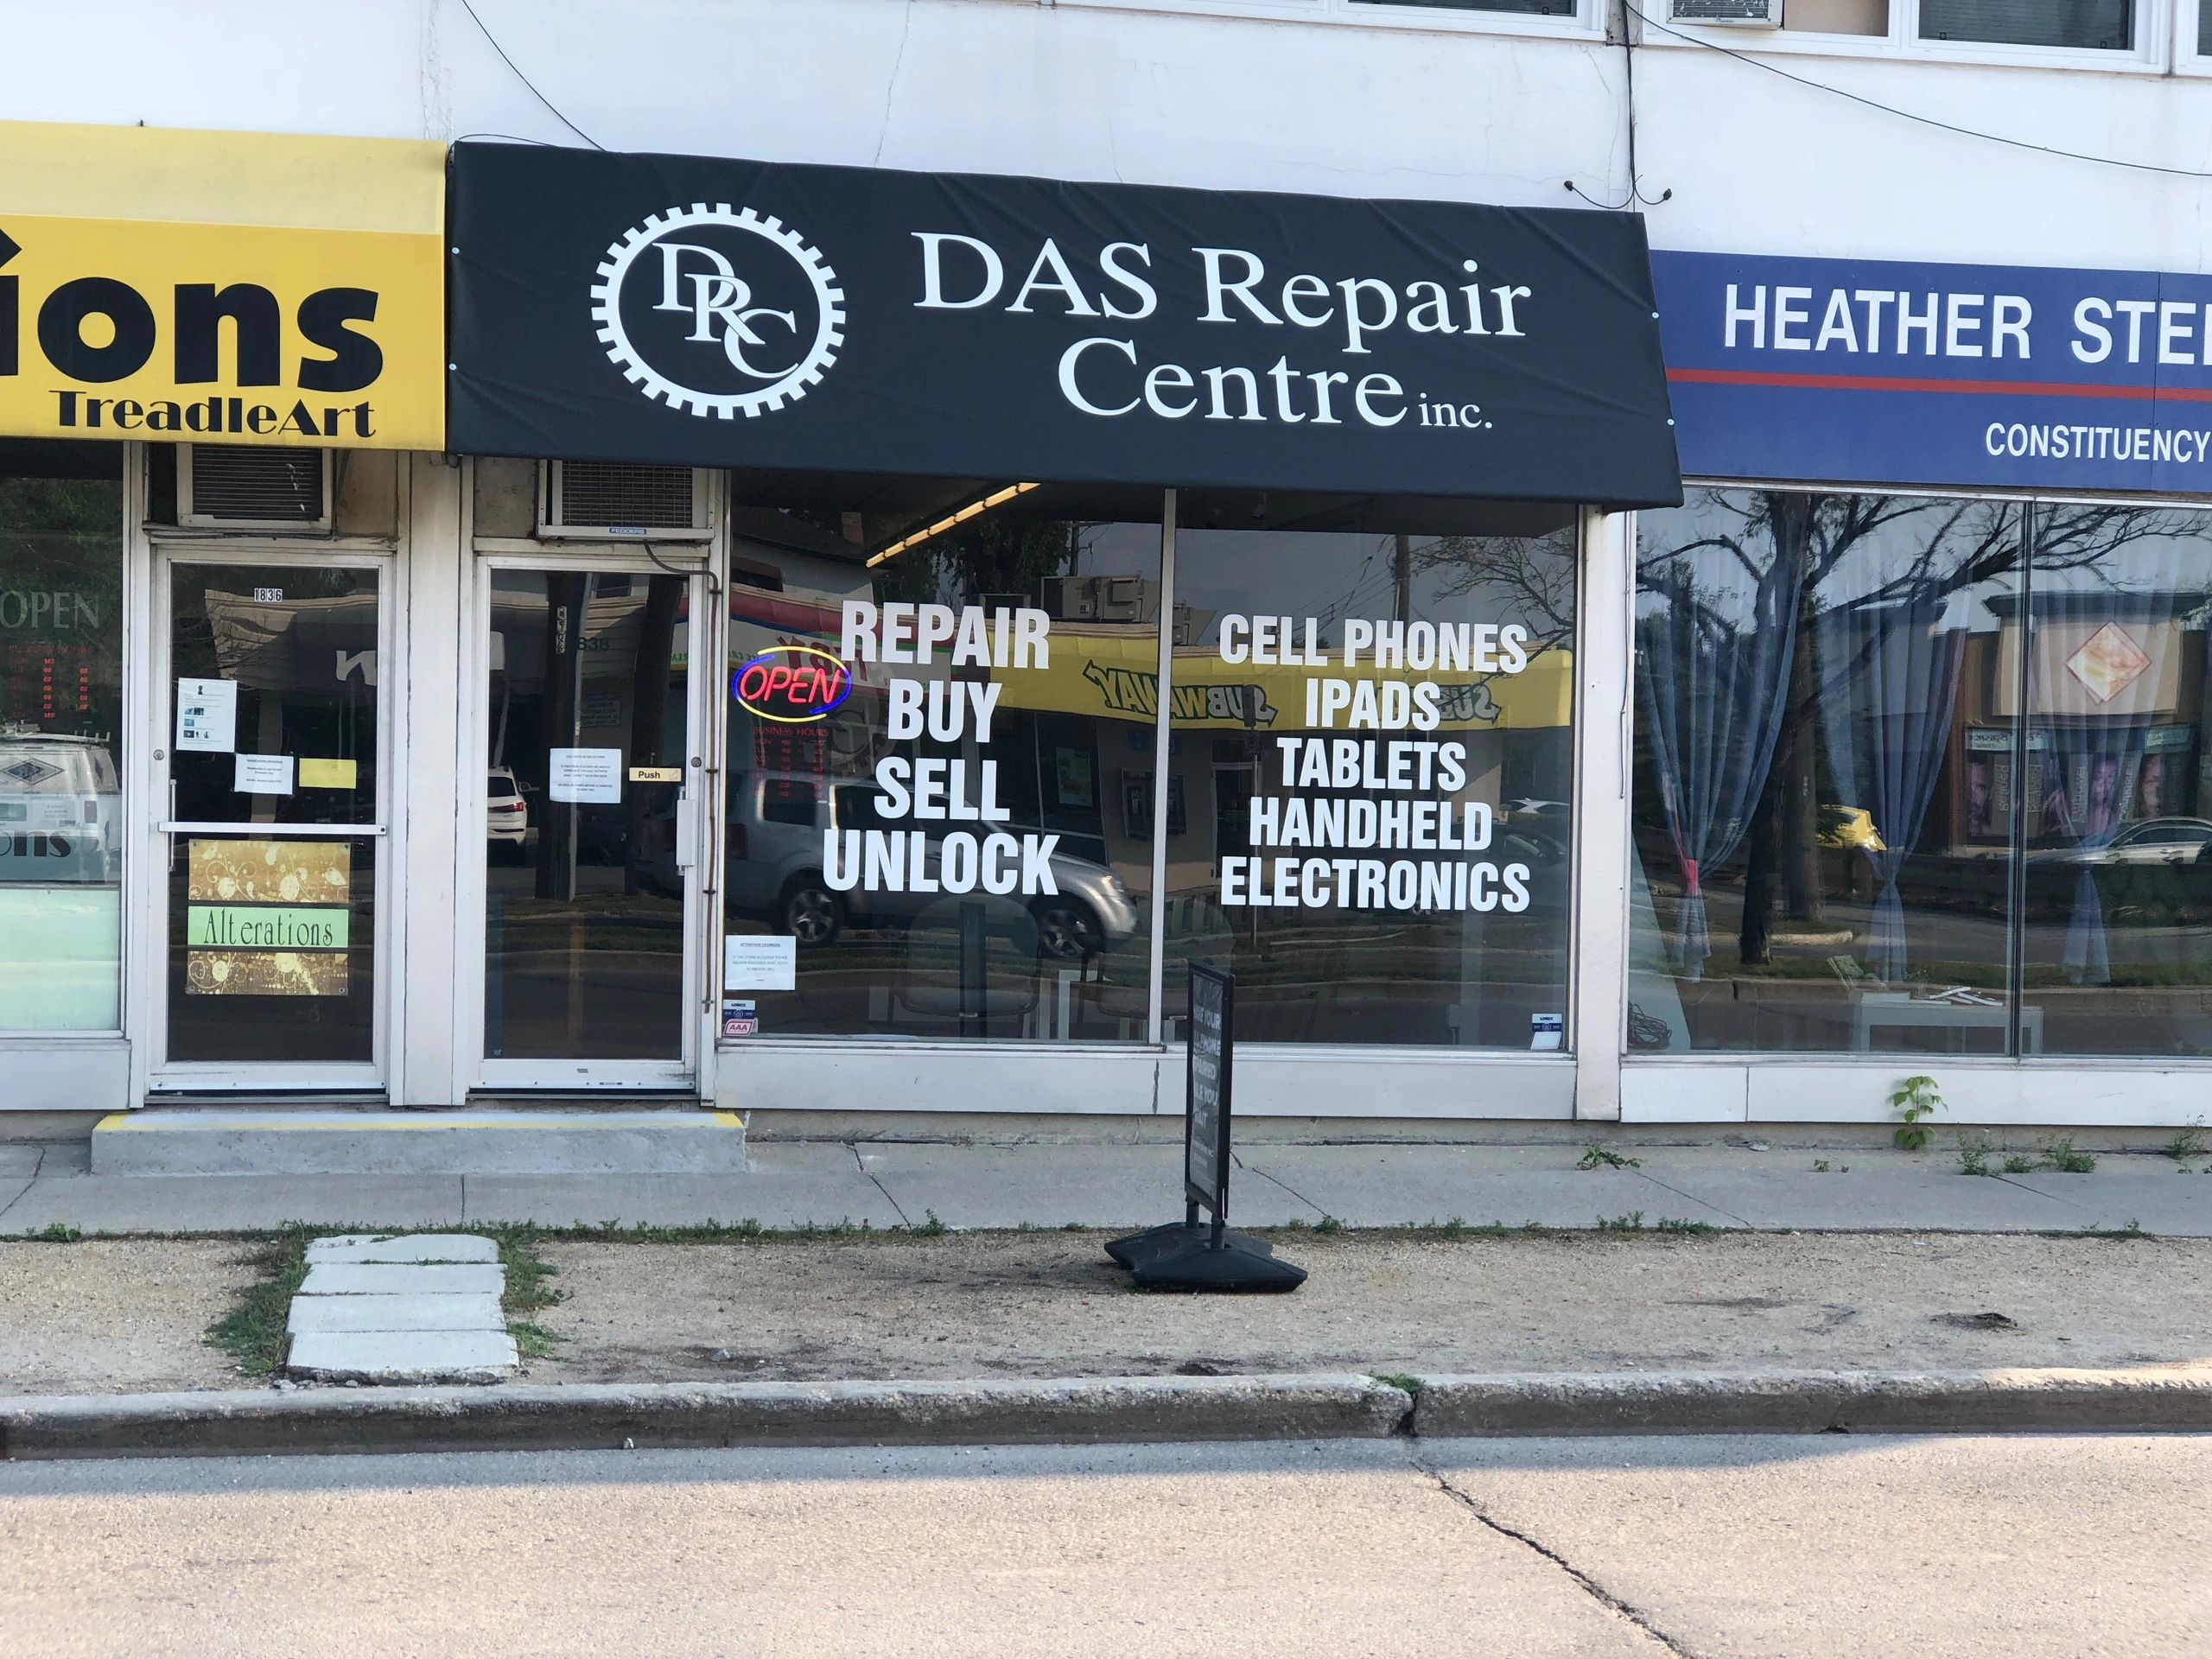 Iphone Repair Winnipeg >> Das Repair Centre Inc Cell Phone Repair Winnipeg Manitoba